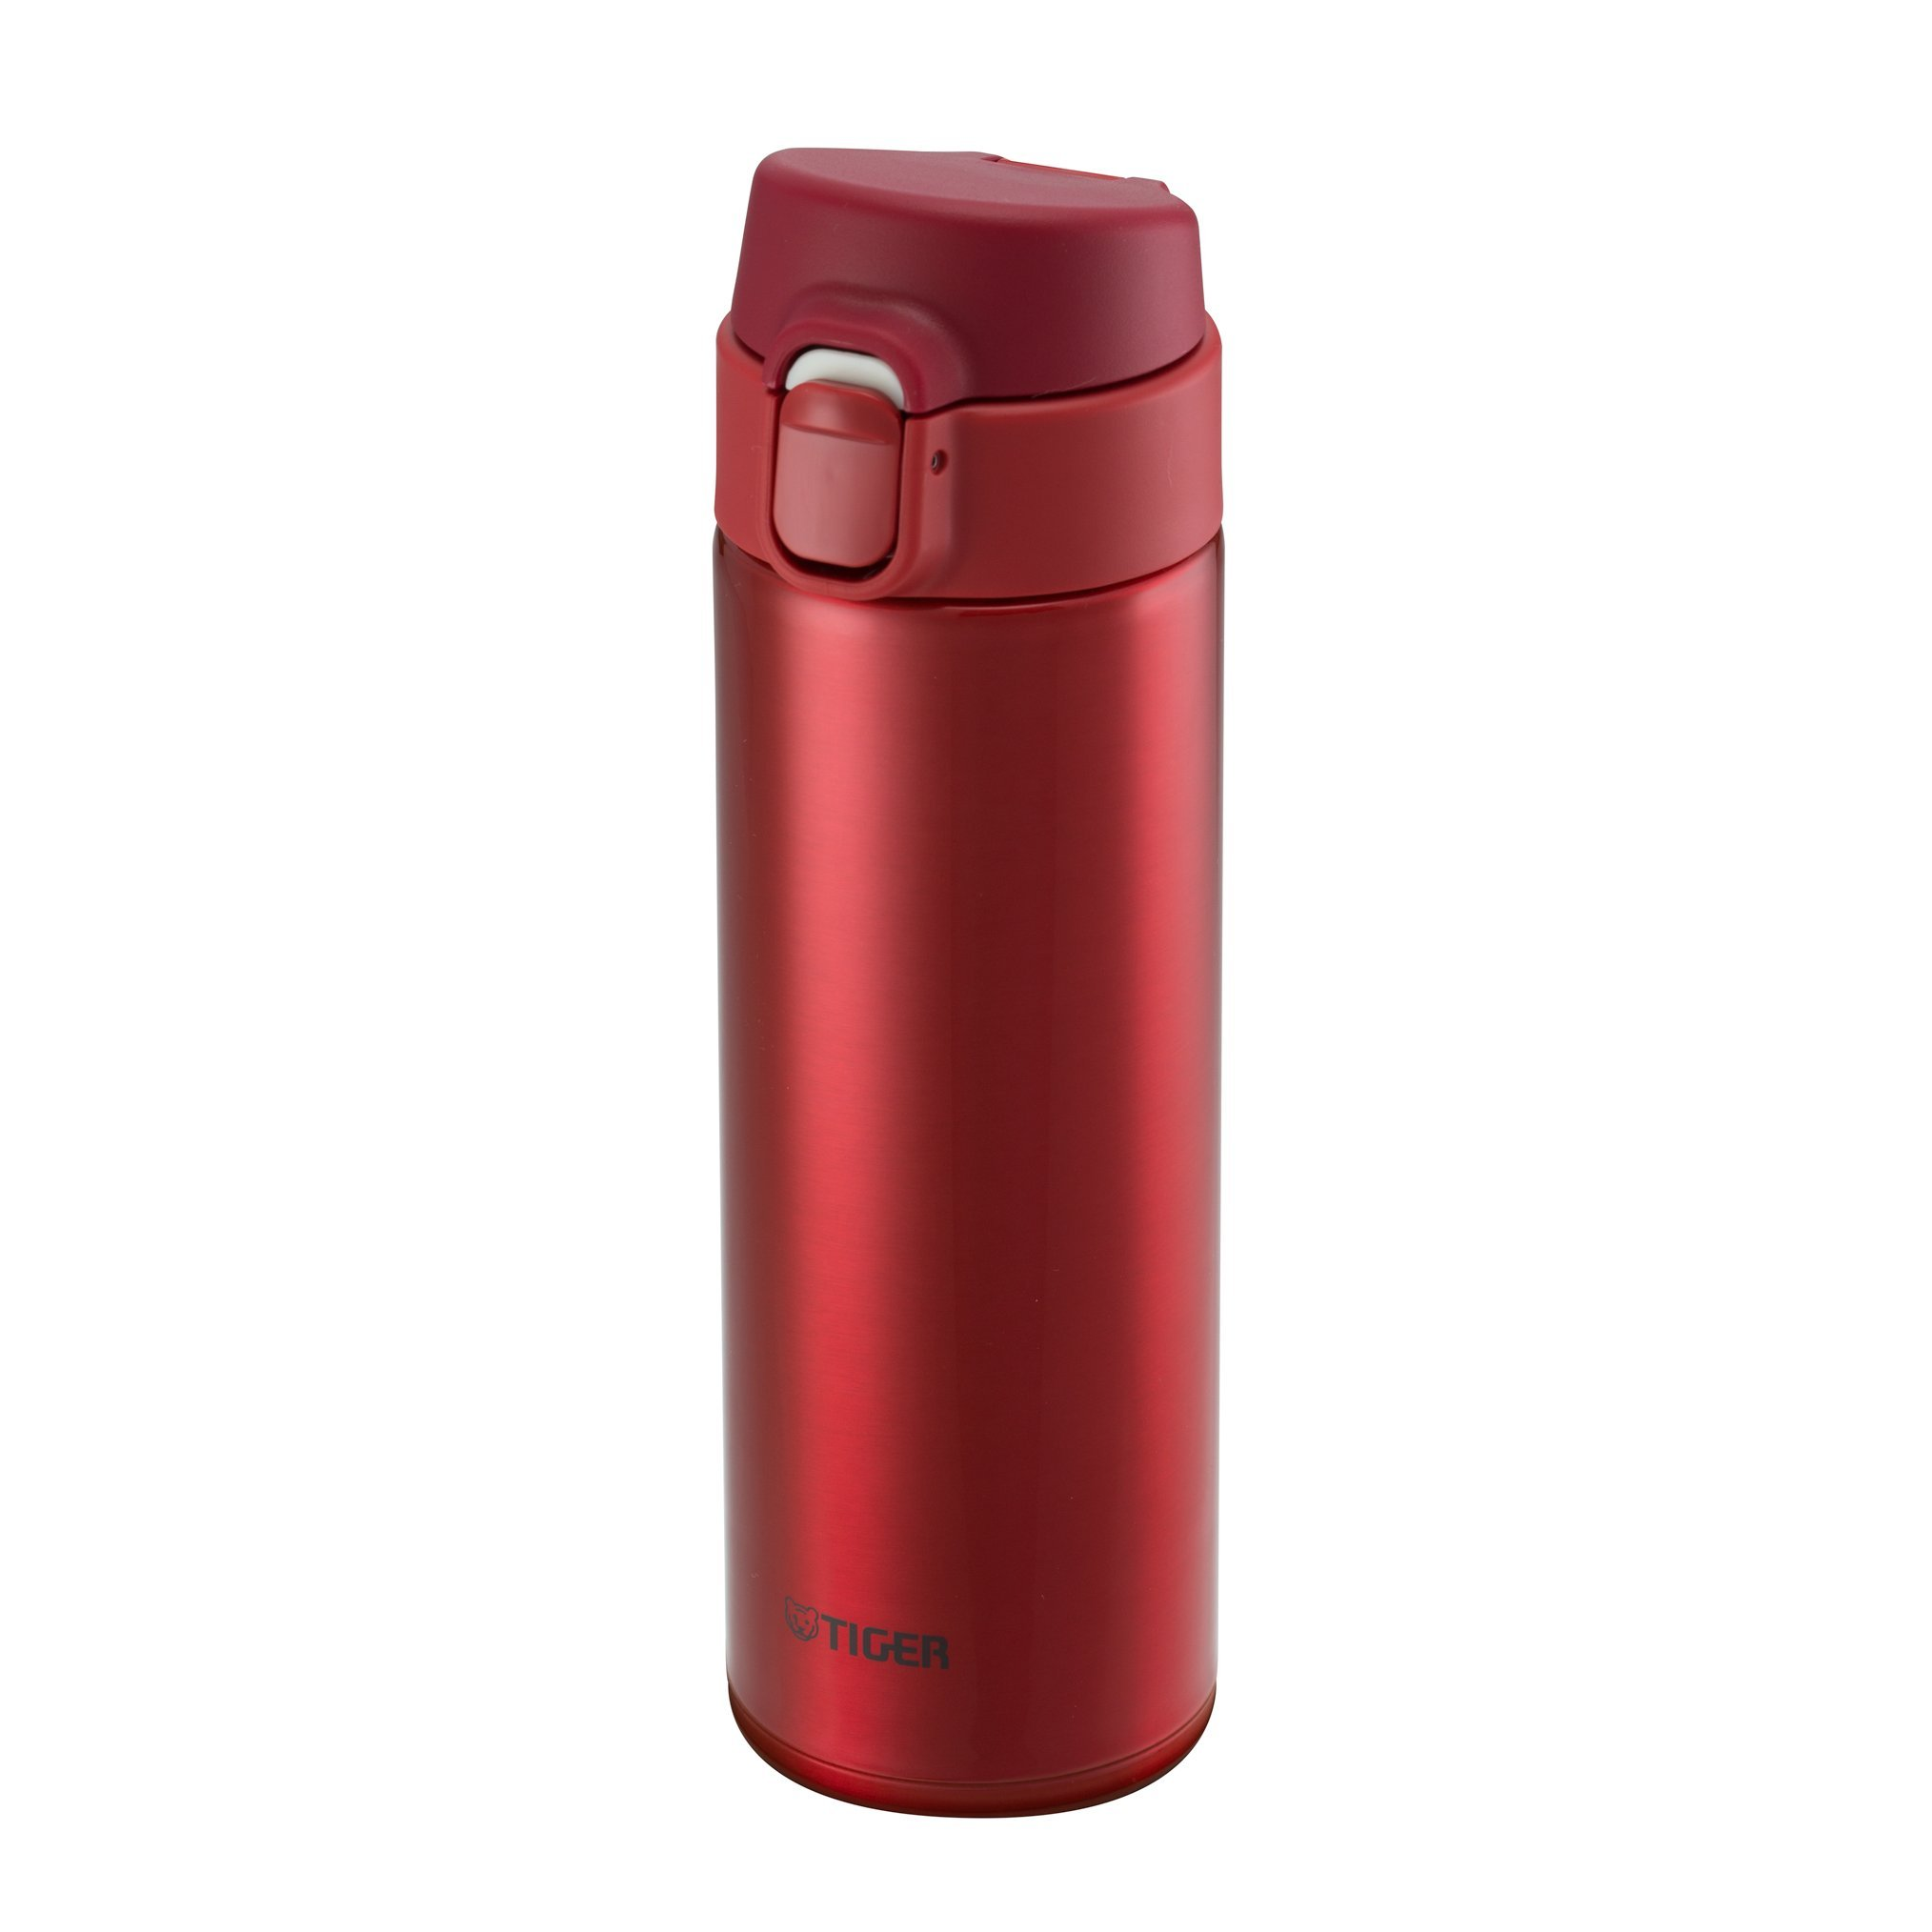 Tiger MMY-A048 RY Vacuum Insulated Stainless Steel Travel Mug, Double Wall, Flip Open Lid with Lock Button, 16 Oz/0.48 L, Red